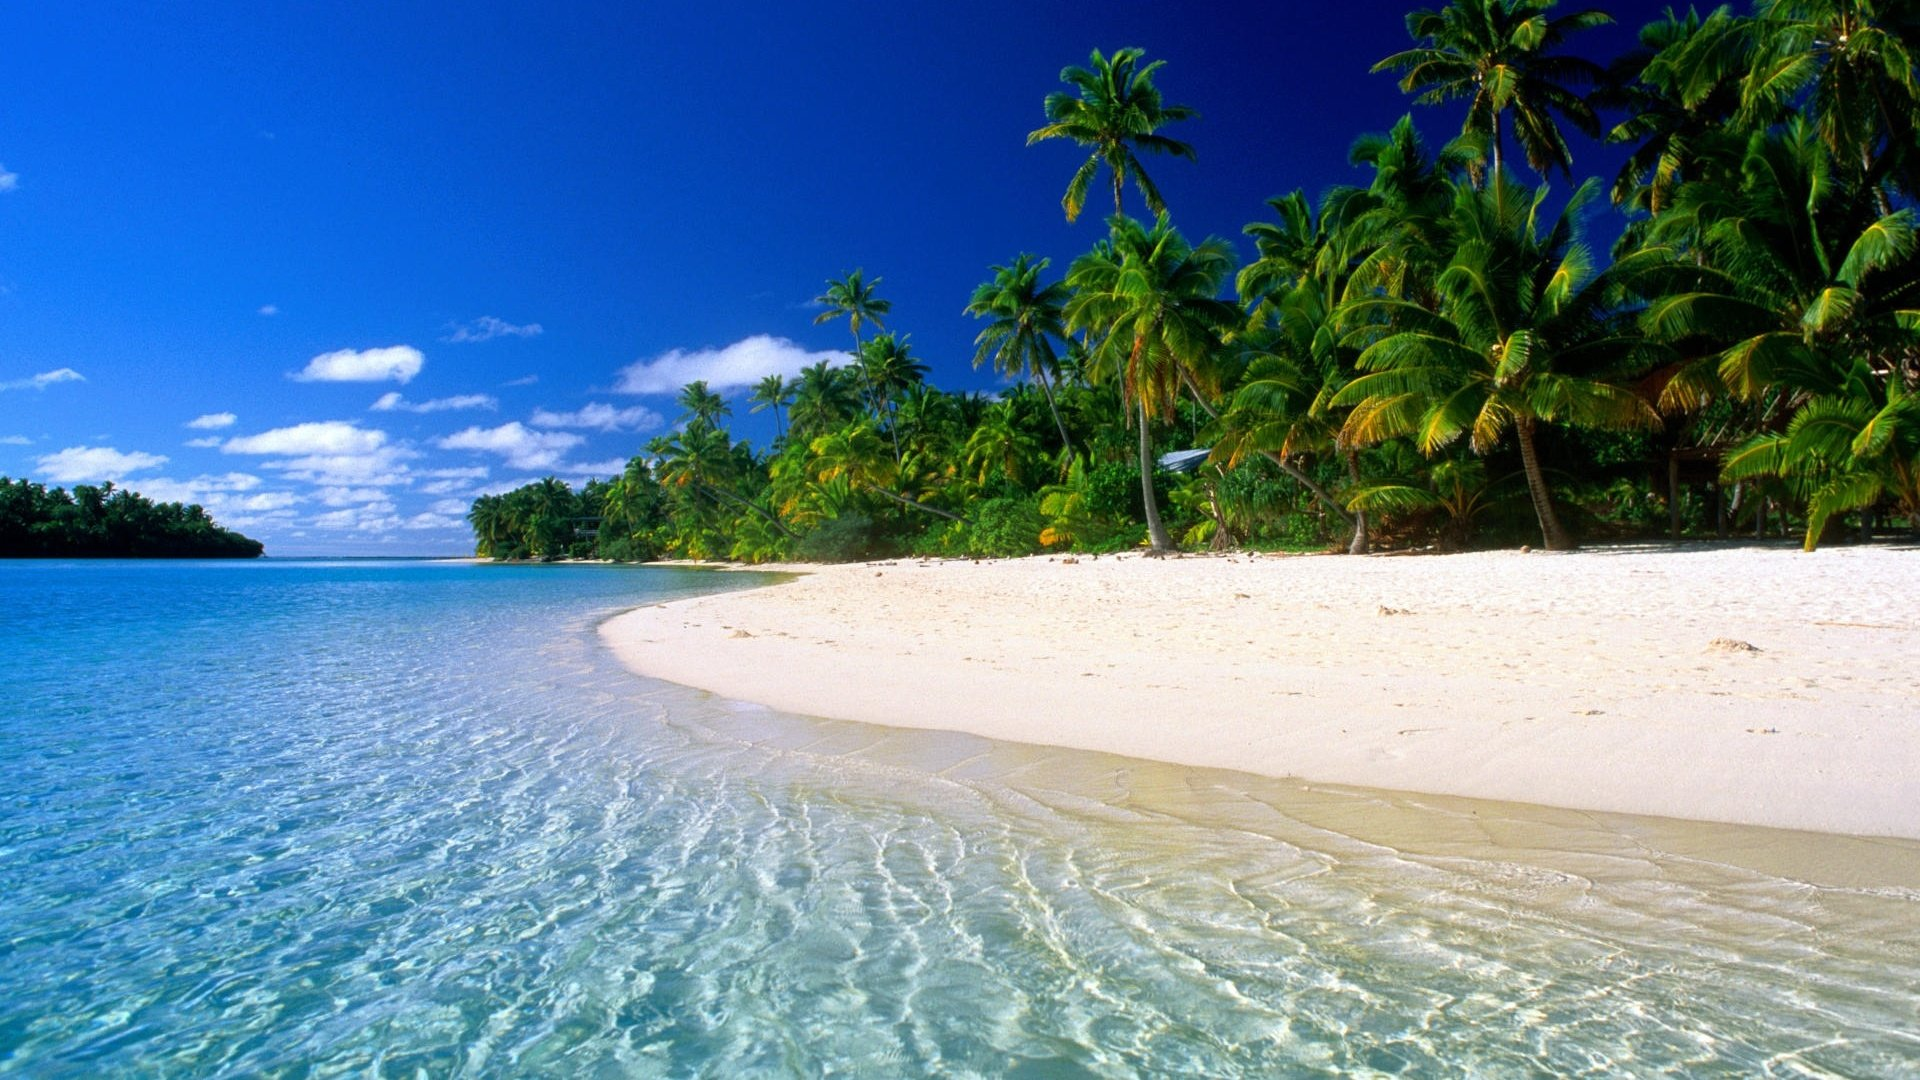 Beautiful Dream Beach HD Wallpaper Nature Wallpapers 1920x1080